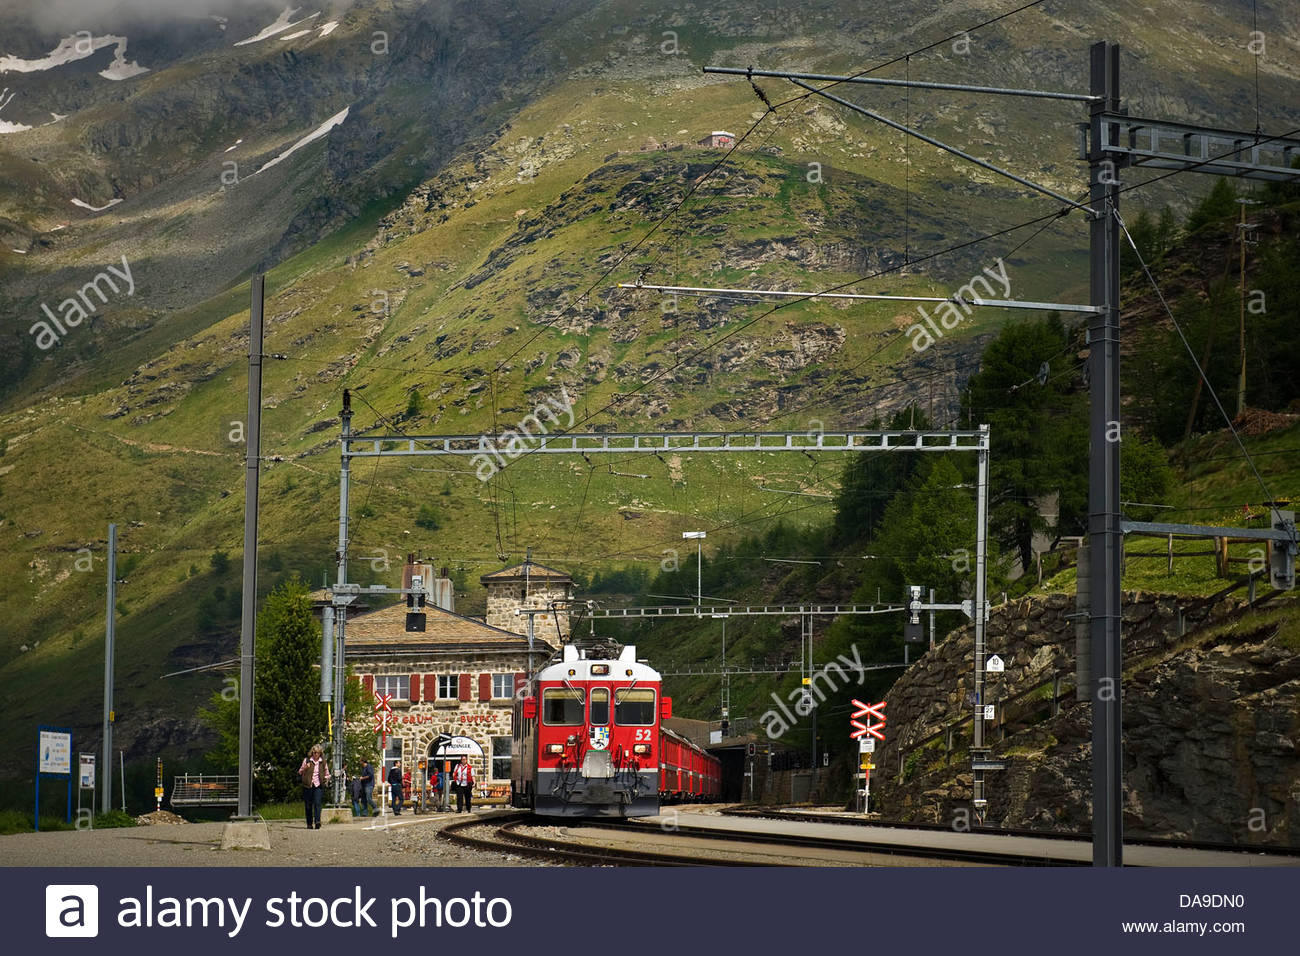 Switzerland,Canton Grisons,Bernina express,Alp Grum railway station - Stock Image